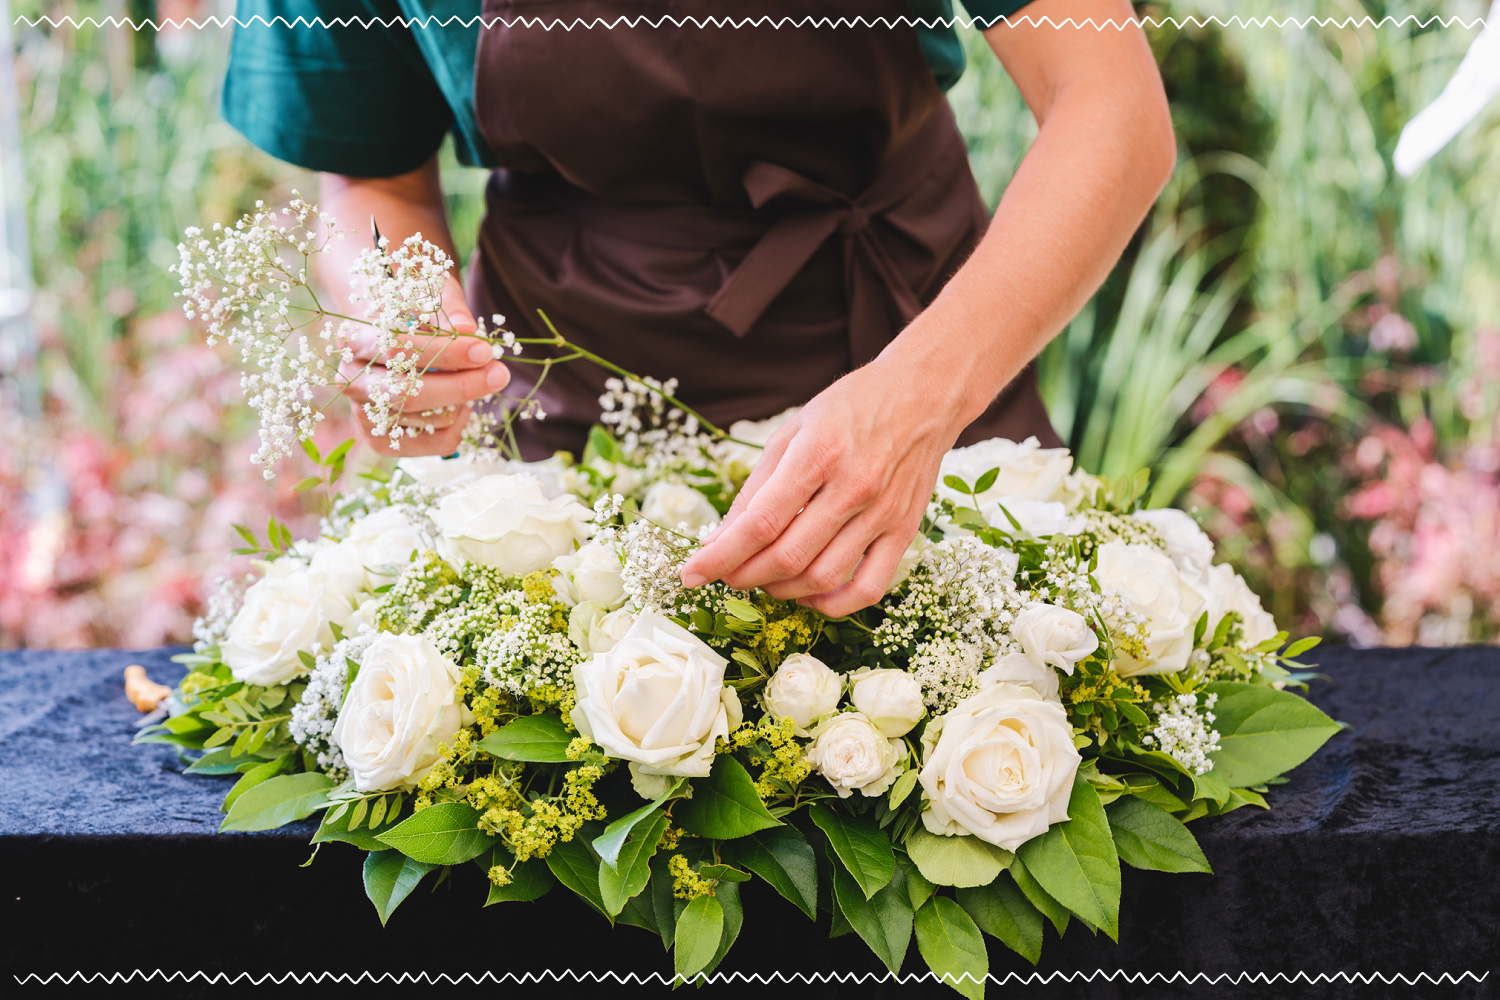 florist arranging a bouquet of white flowers